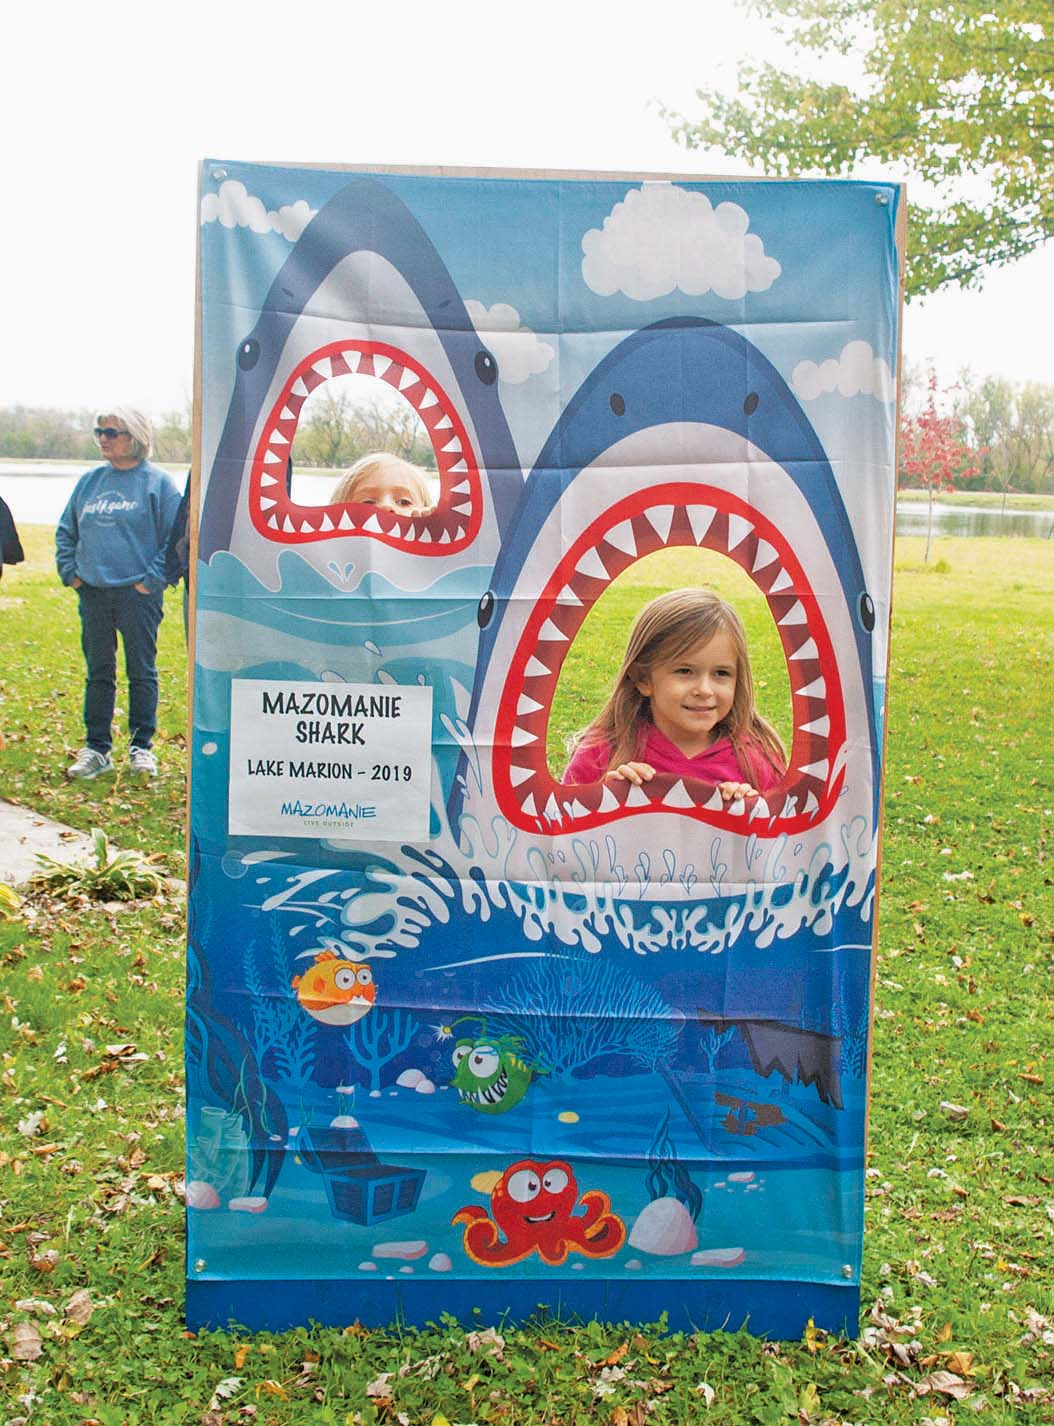 Lucy, above, just barely peeks through, and Trinity Beil is all smiles, as they impersonated the infamous Lake Marion shark at the grand opening Saturday, Oct. 19. Despite the rain Mazomanie residents gathered for food and beer to dedicate the lake's long-awaited restoration.